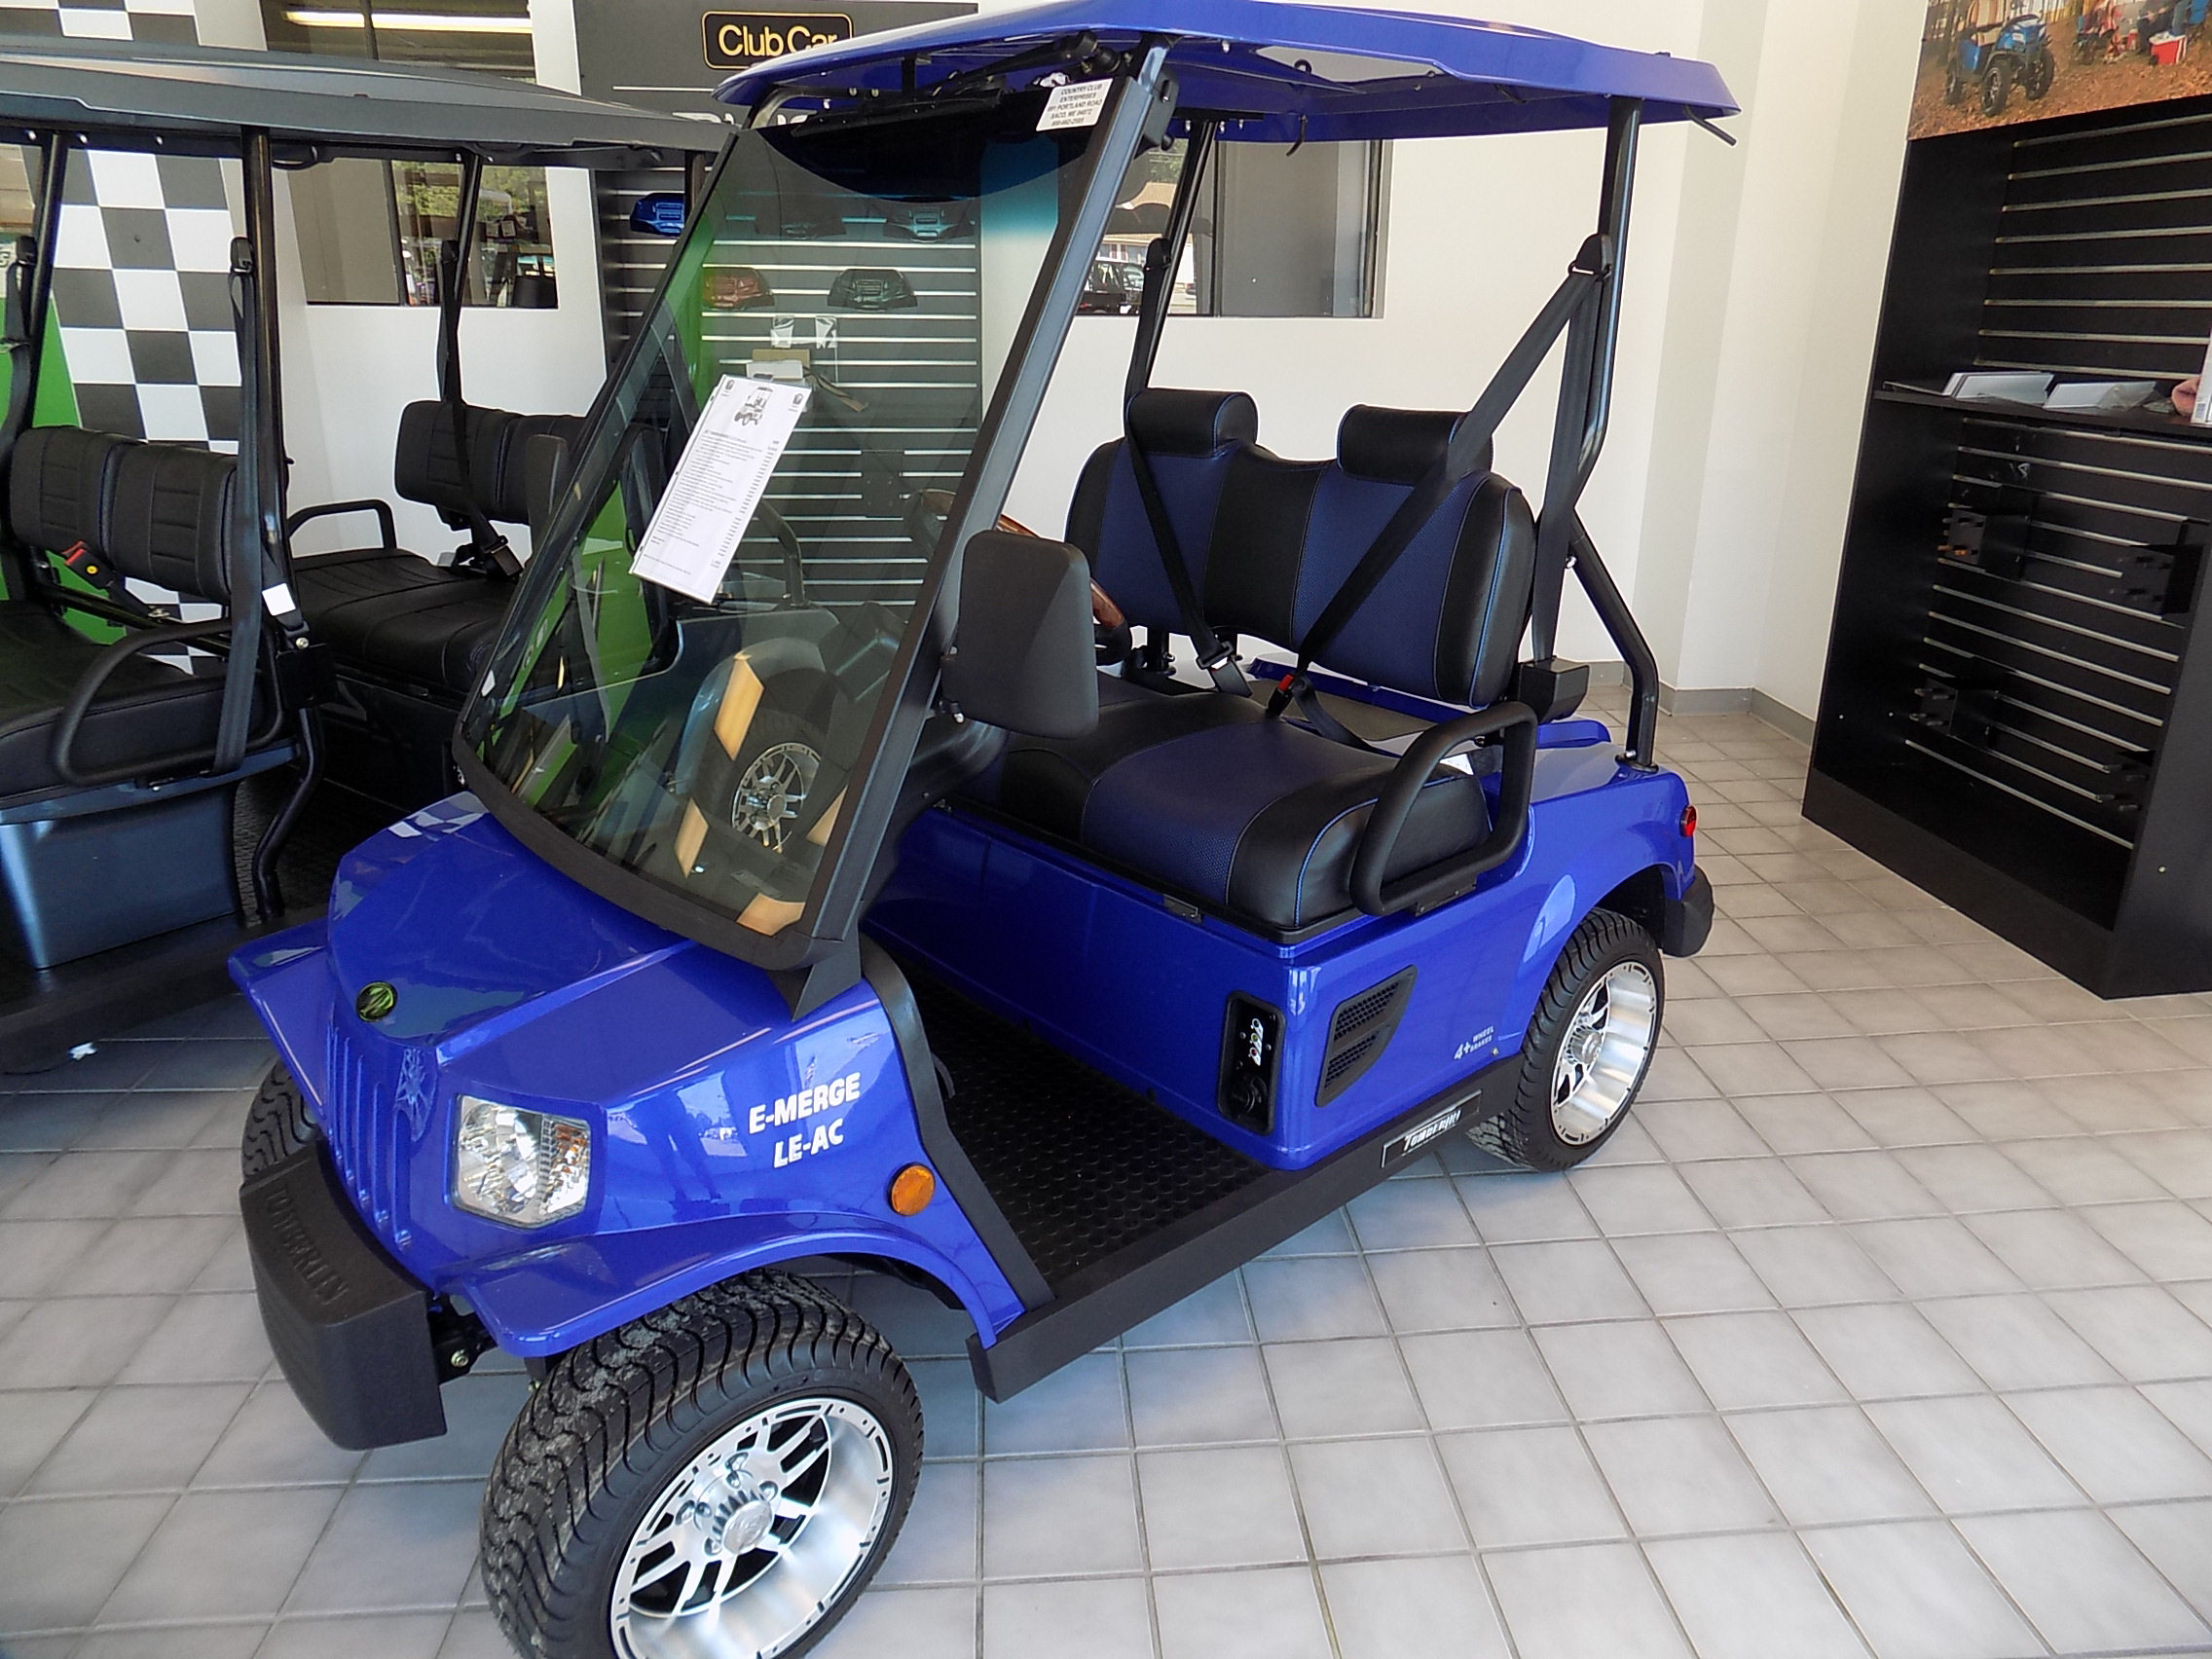 new 2017 street legal tomberlin emerge e2 le lsv with full new car warranty cce golf cars [ 2272 x 1704 Pixel ]